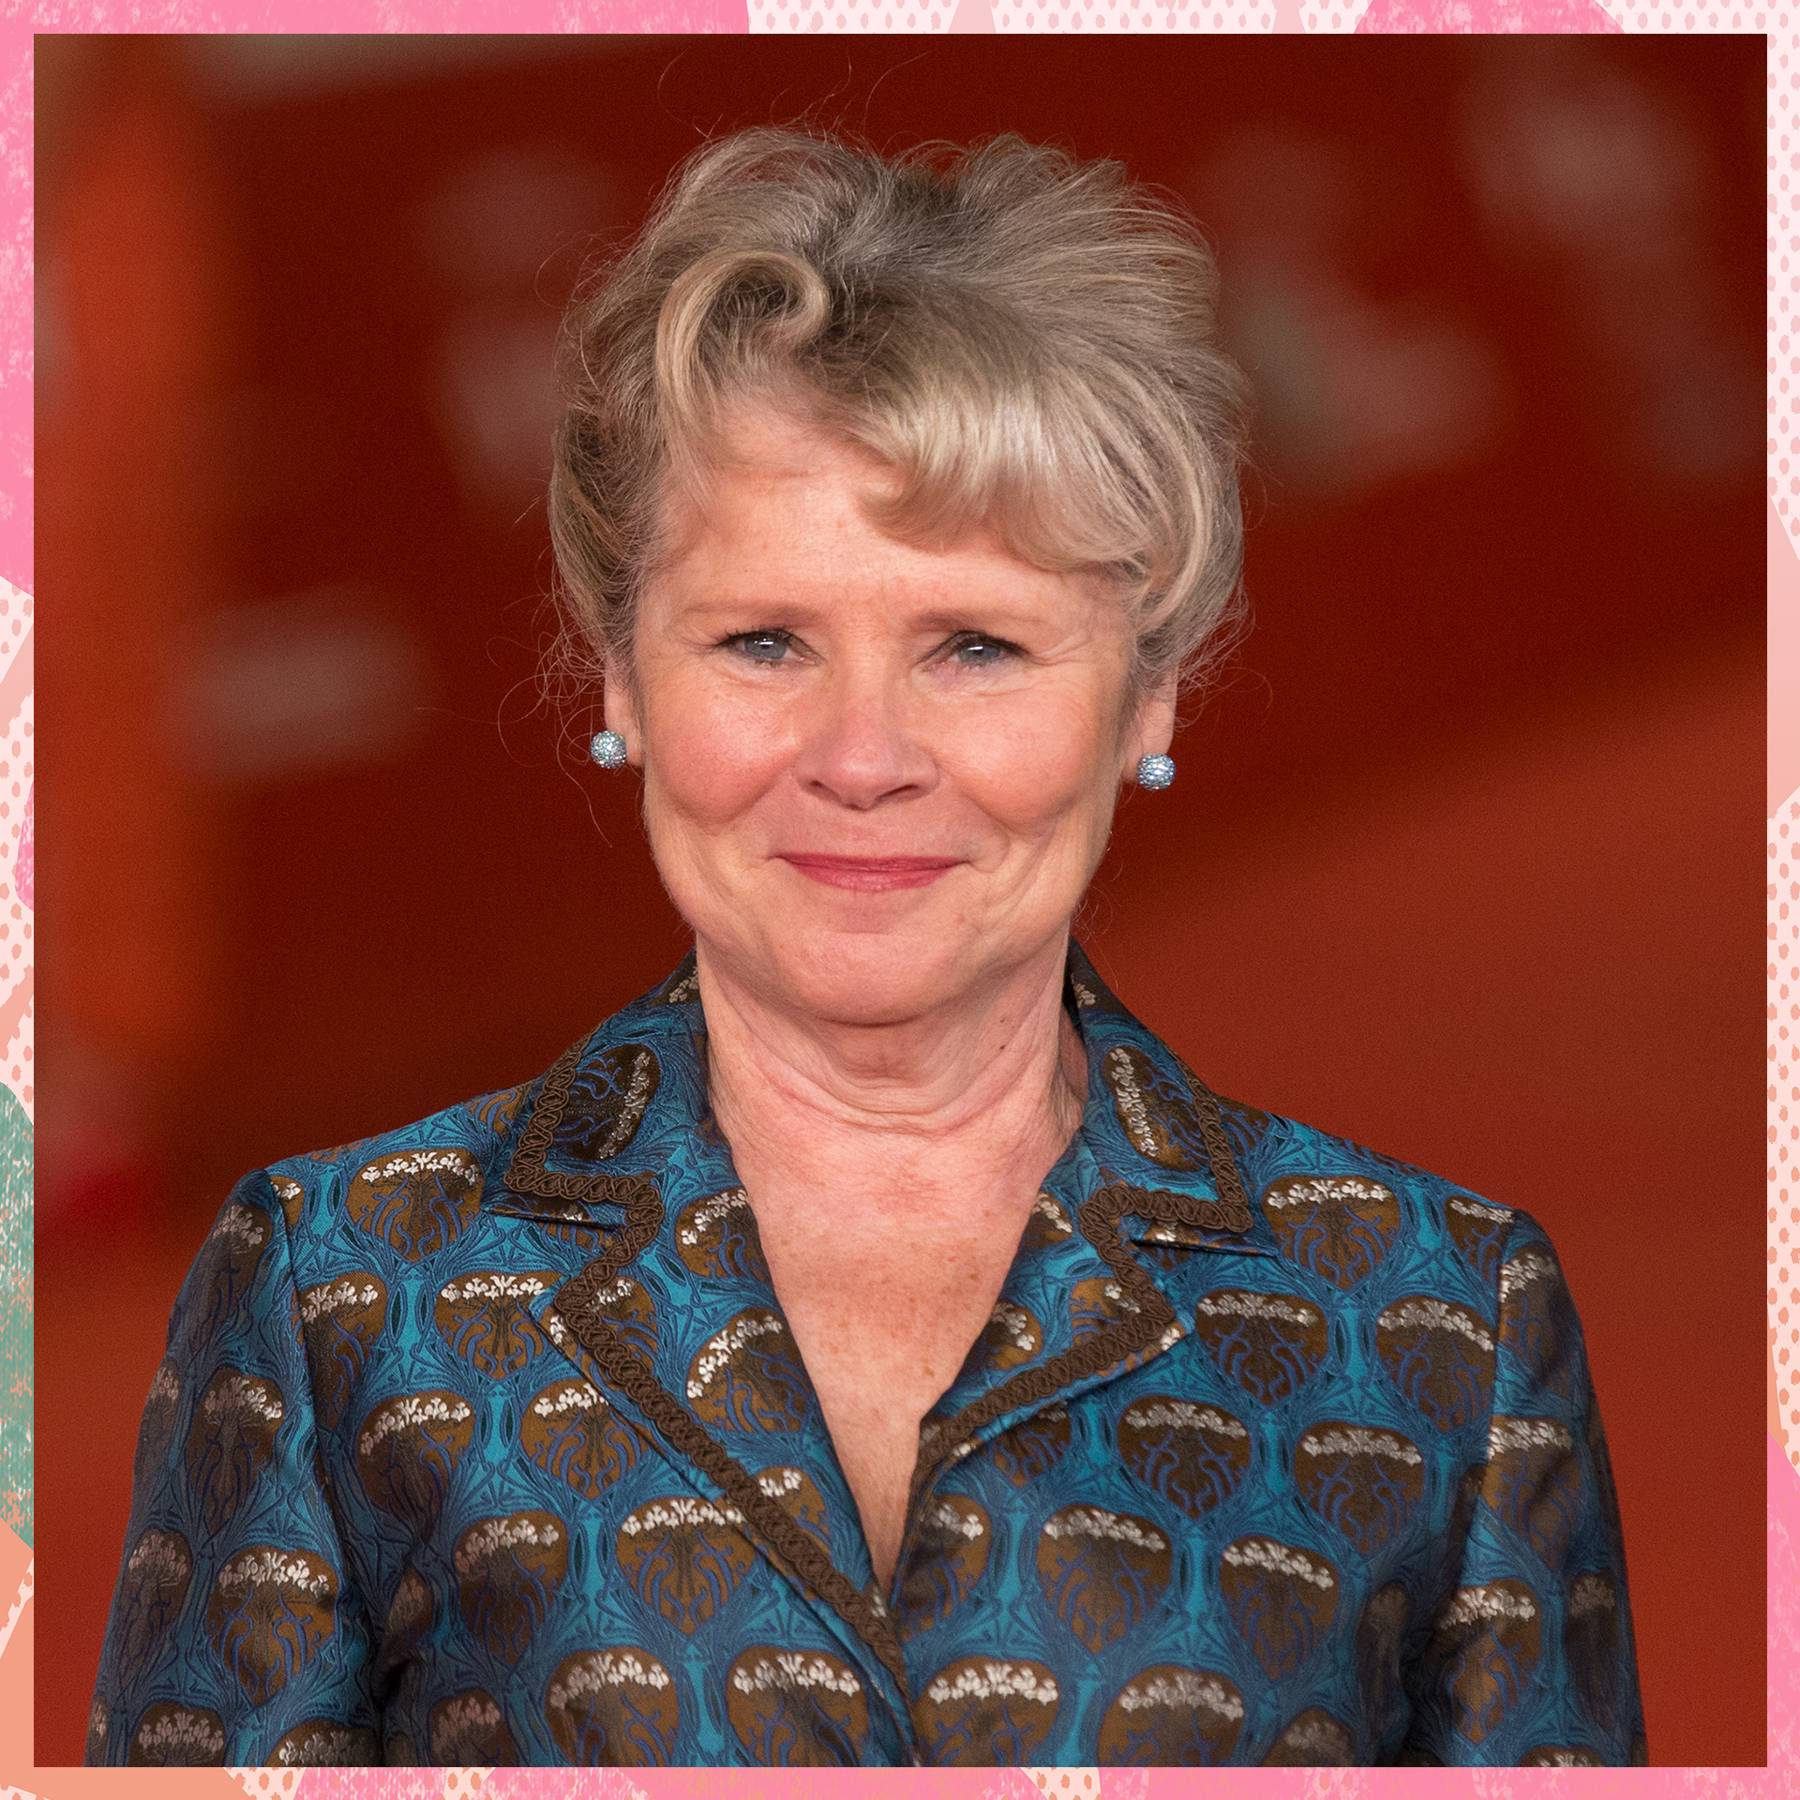 Imelda Staunton will take over the role of Queen Elizabeth II from Claire Foy and Olivia Colman in season 5 of The Crown